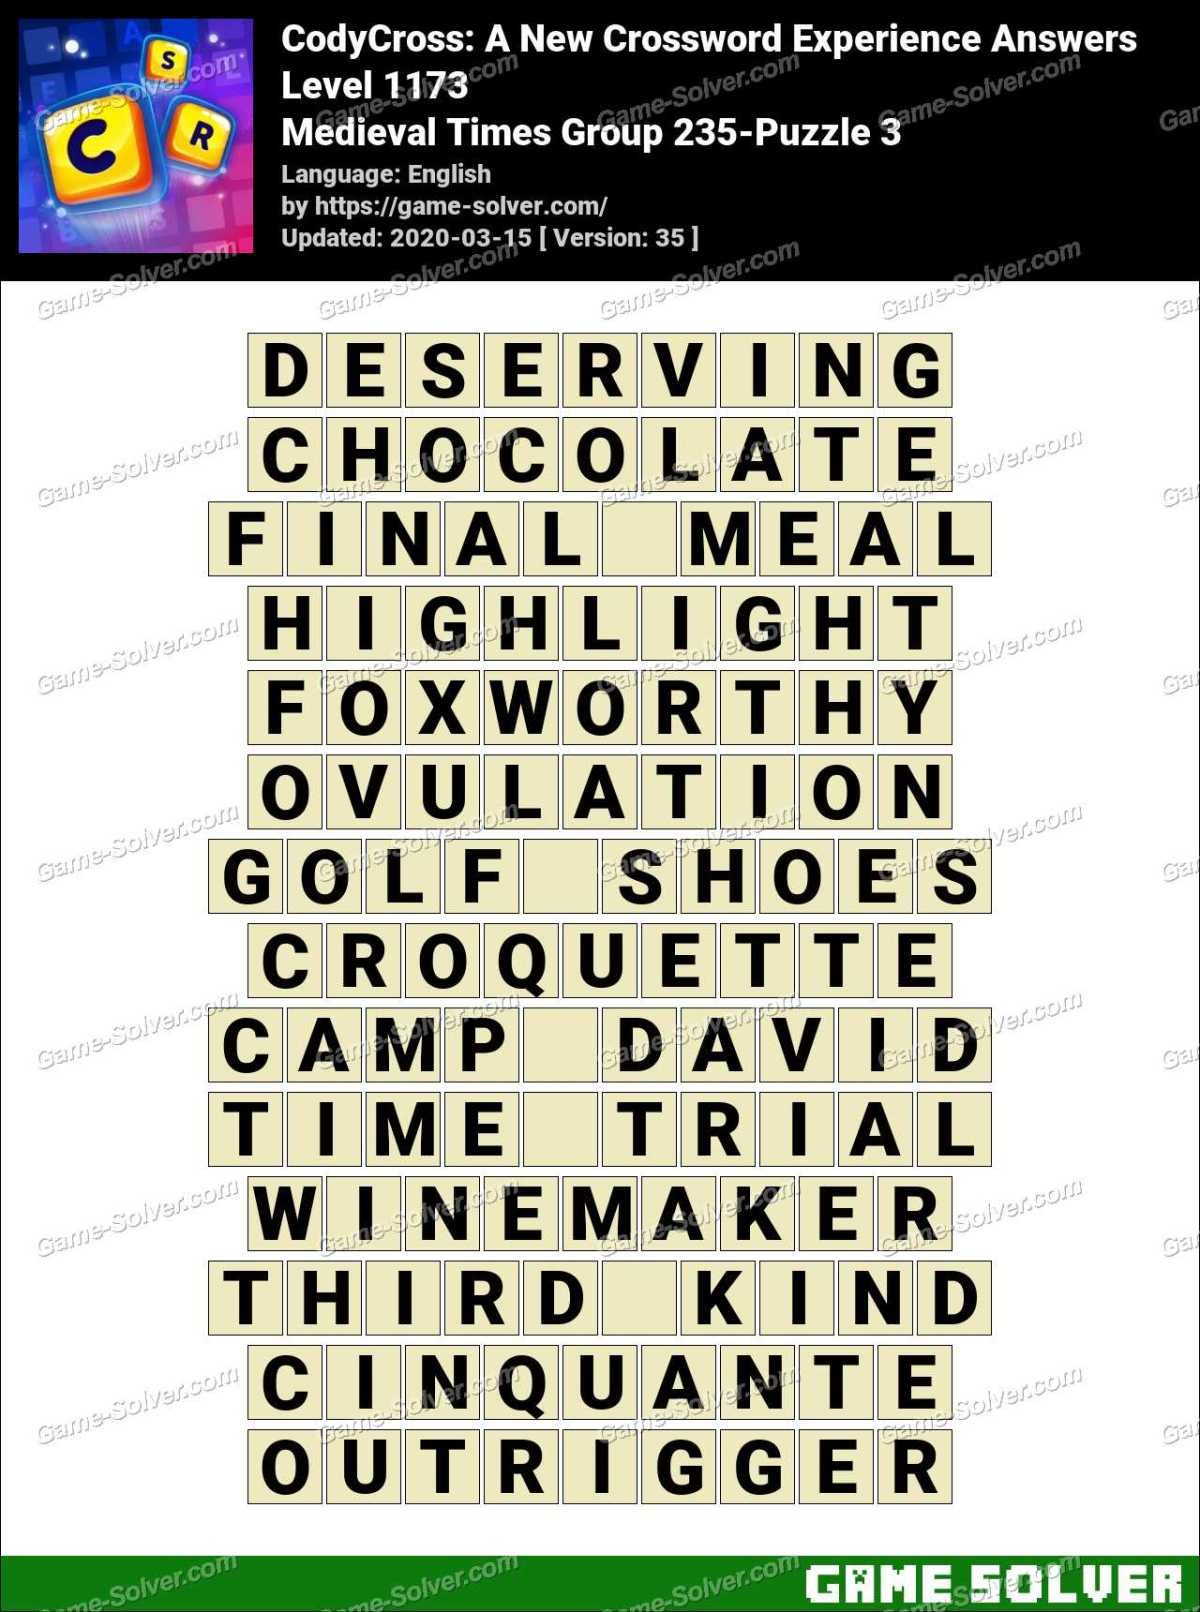 CodyCross Medieval Times Group 235-Puzzle 3 Answers